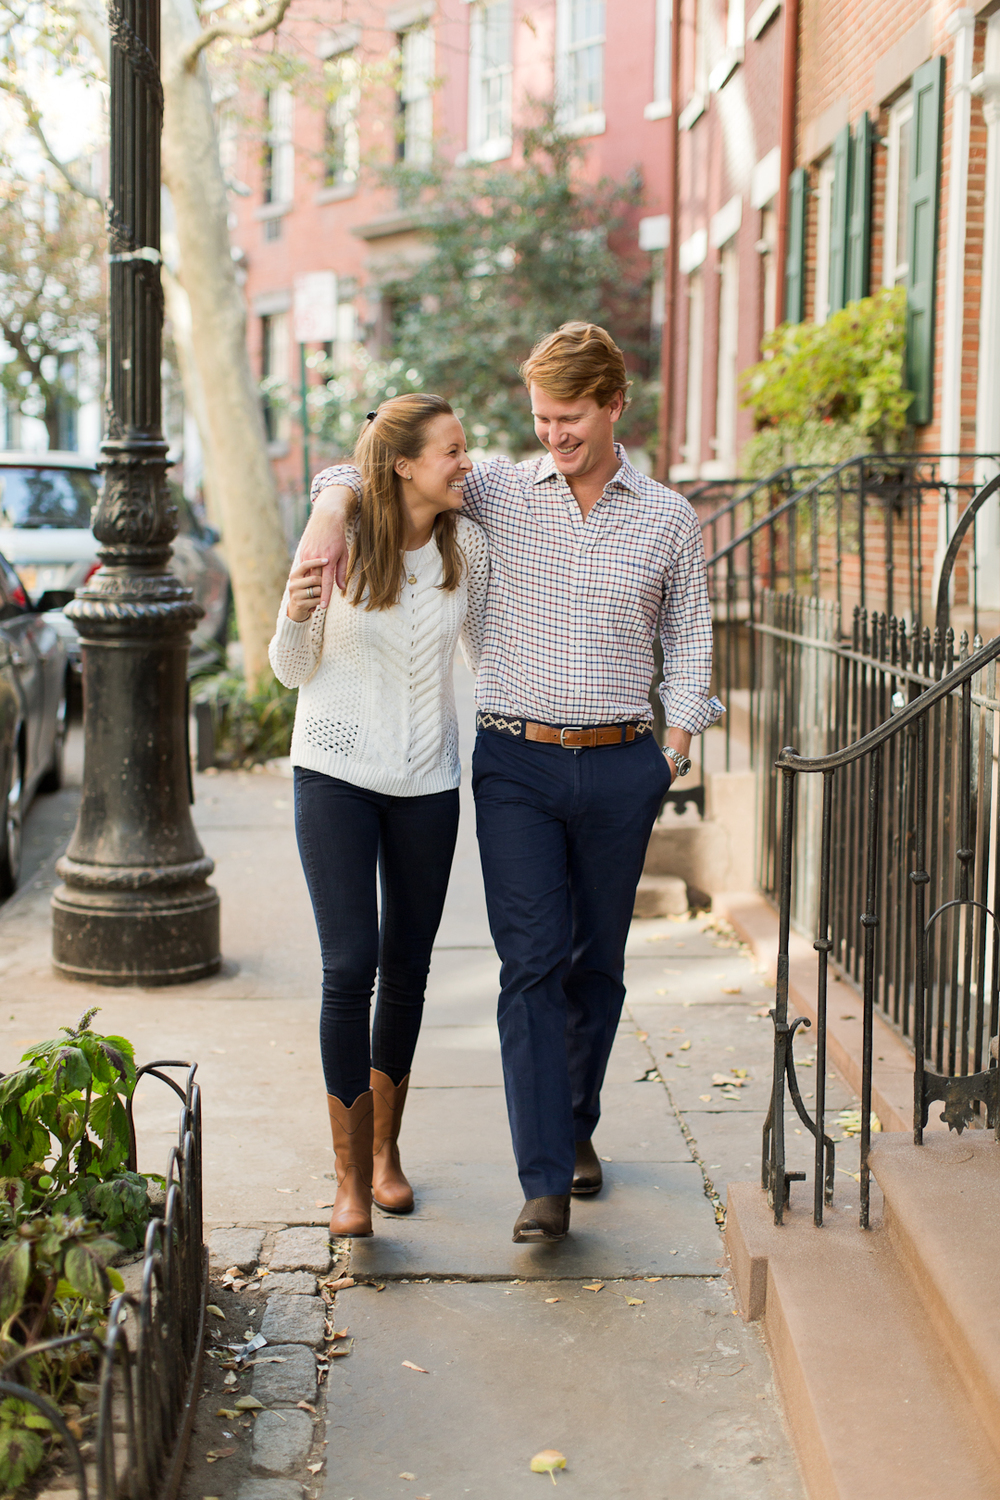 Melissa Kruse Photography - Megan & Tyler West Village Engagement Photos-71.jpg